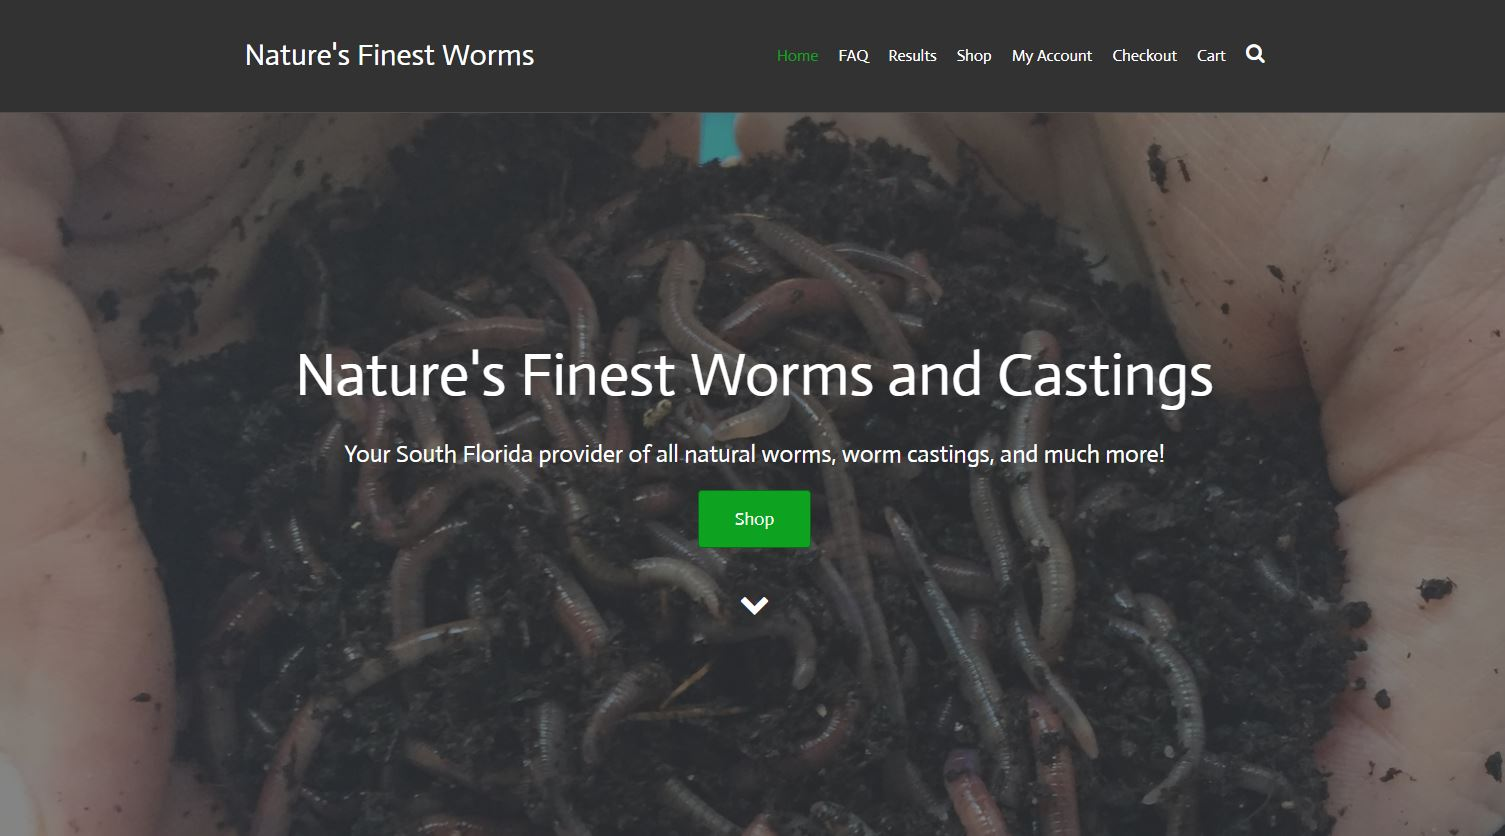 Screenshot of Natures Finest Worms website